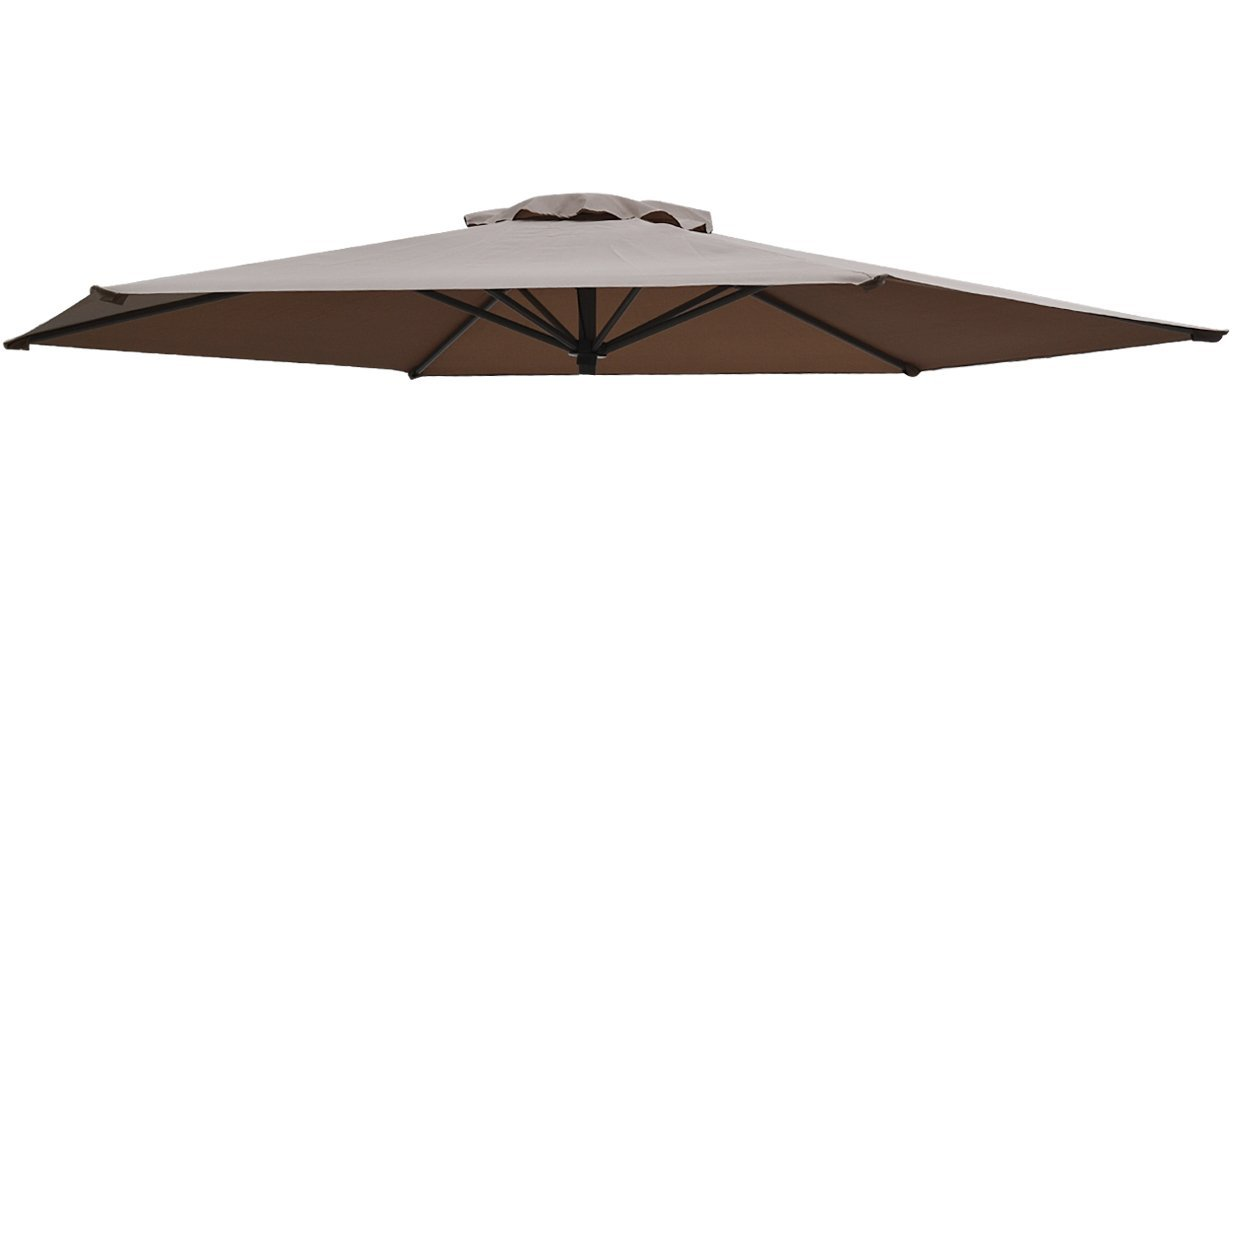 Replacement Patio Umbrella Canopy Cover for 11 5ft 8 Ribs Umbrella Taupe  (CANOPY ONLY)-Taupe